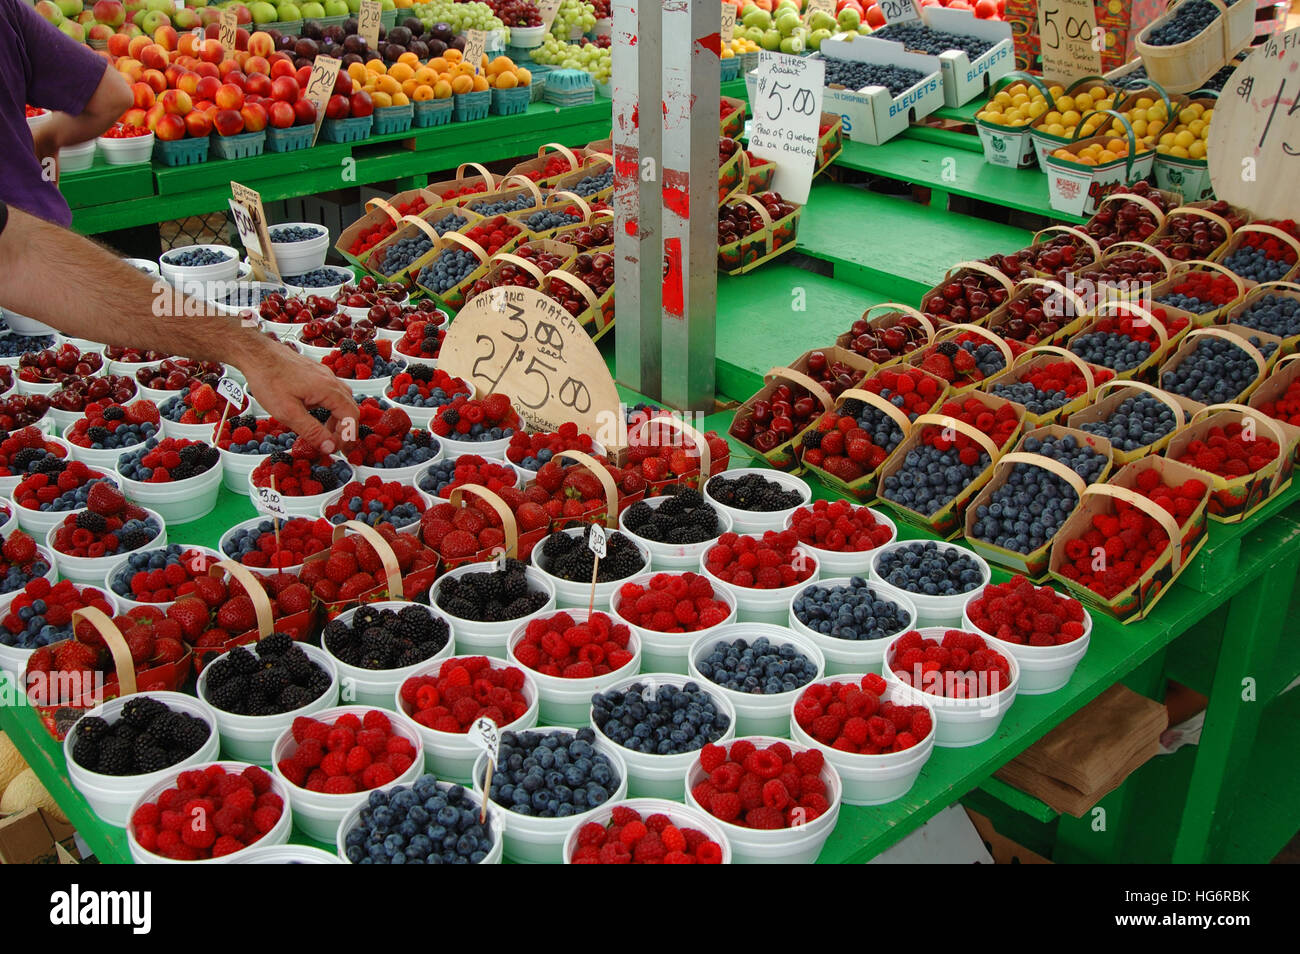 Berries mix the market, Canada - Stock Image